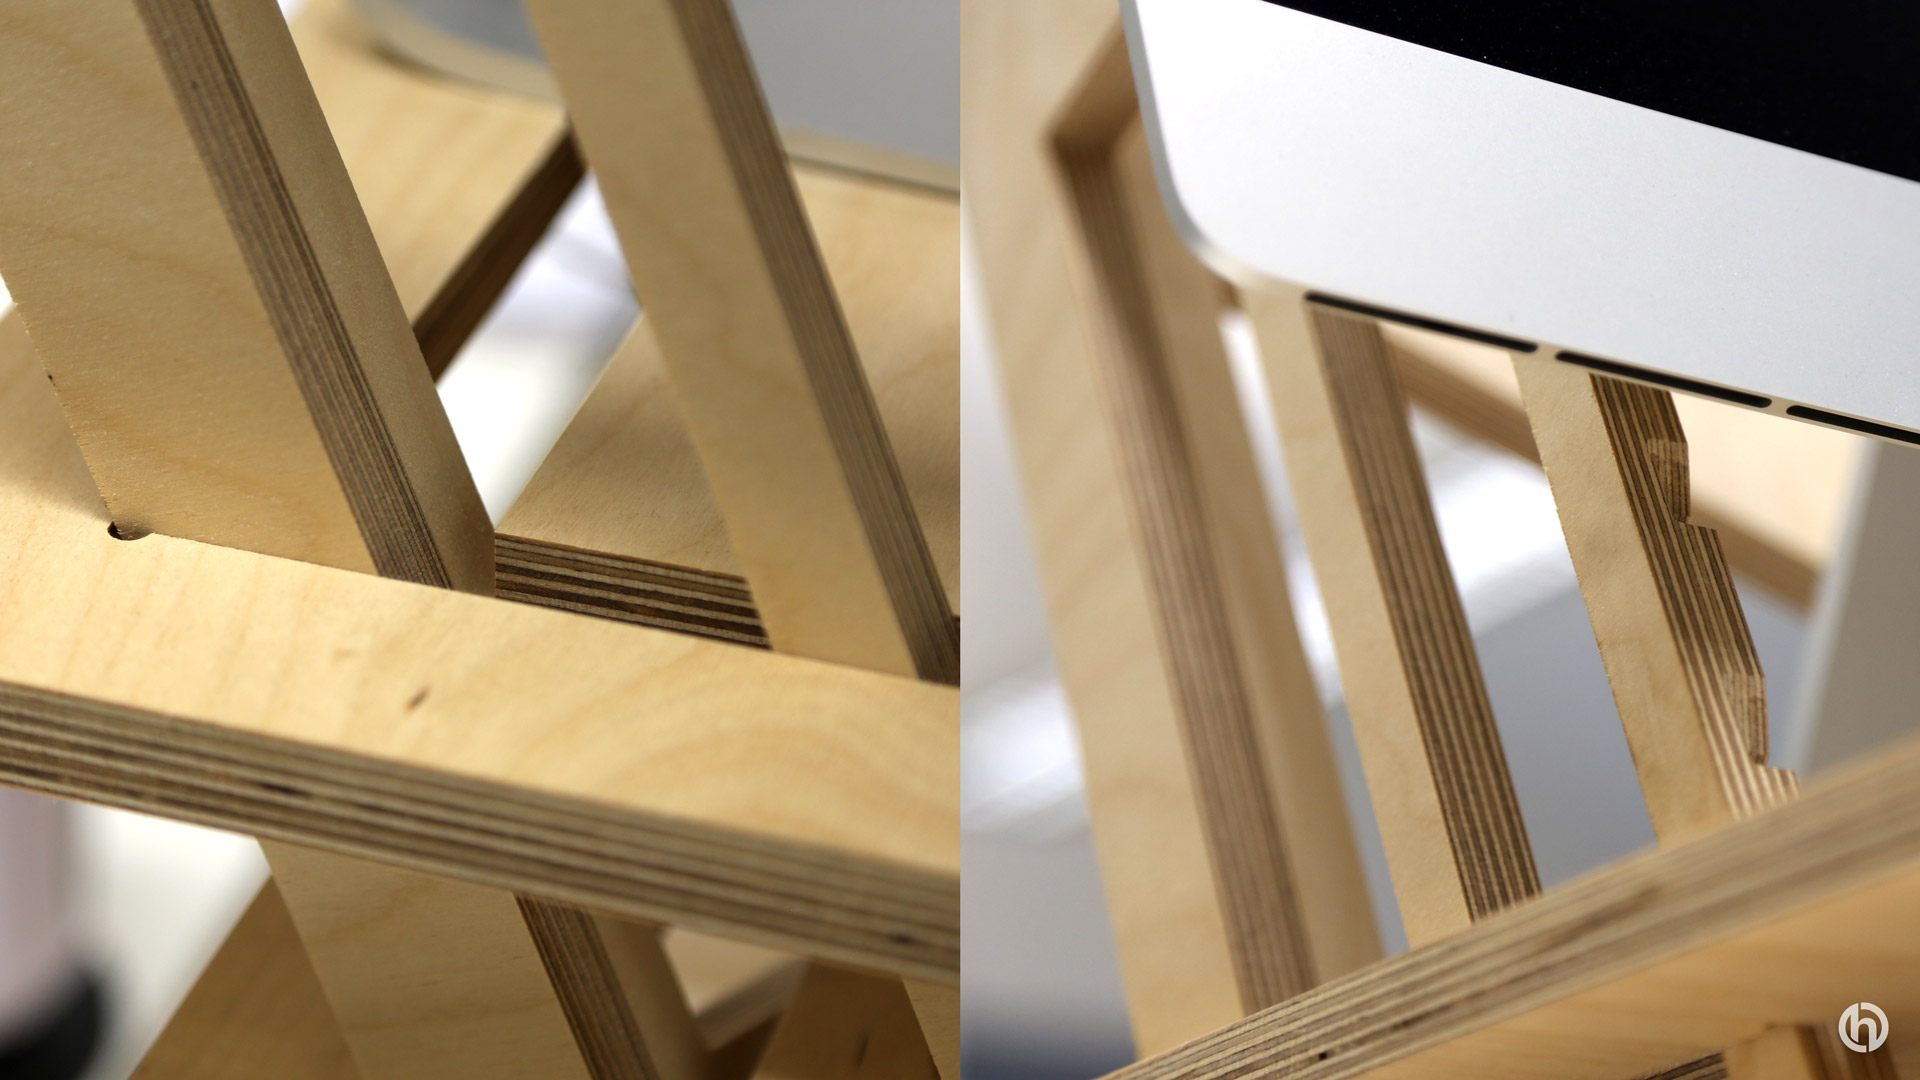 plywood furniture details